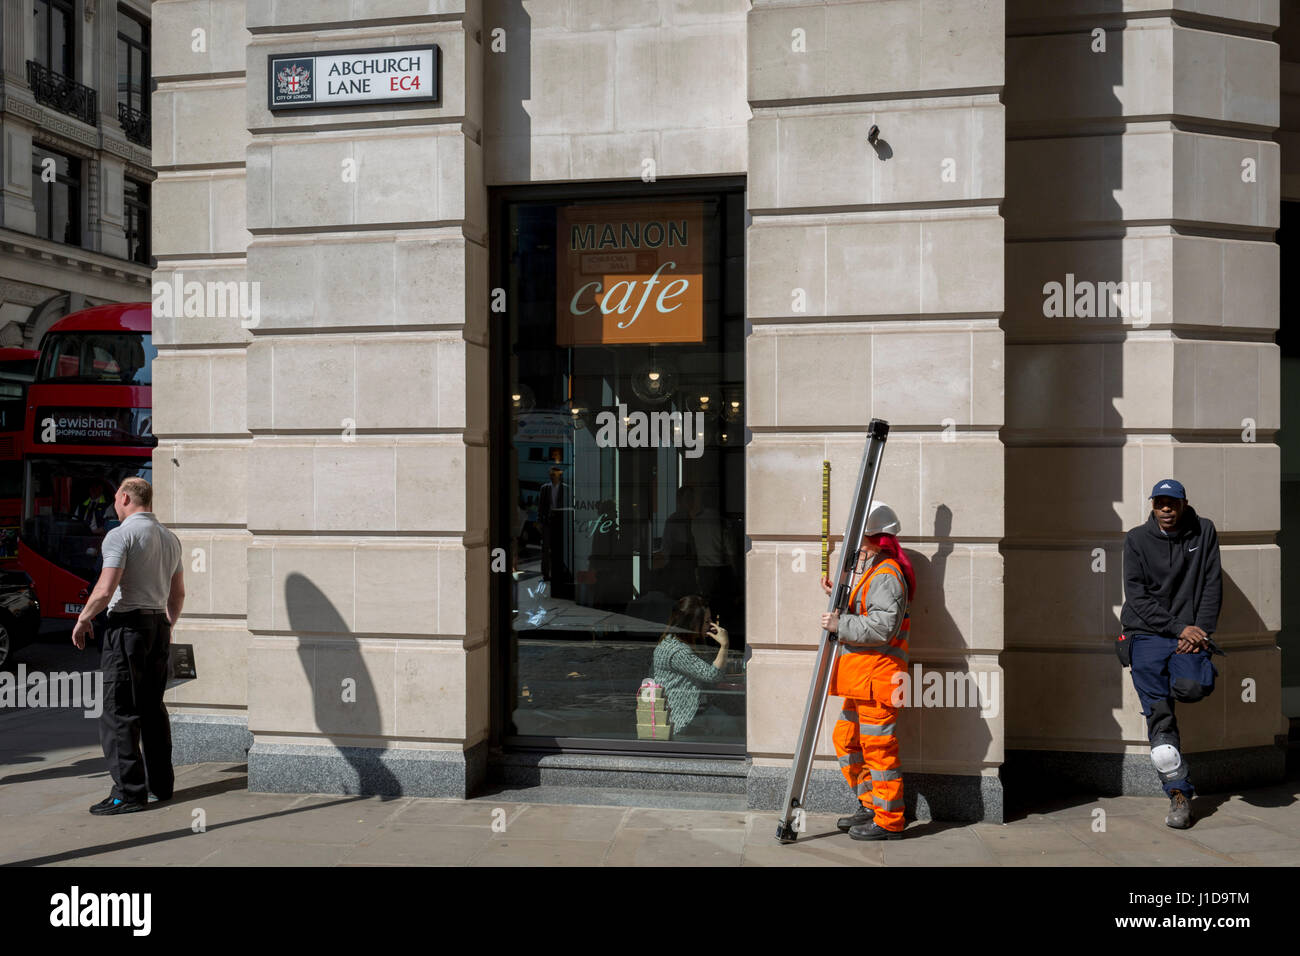 A land surveyor works in the City of London, the capital's financial district also known as the Square Mile, - Stock Image